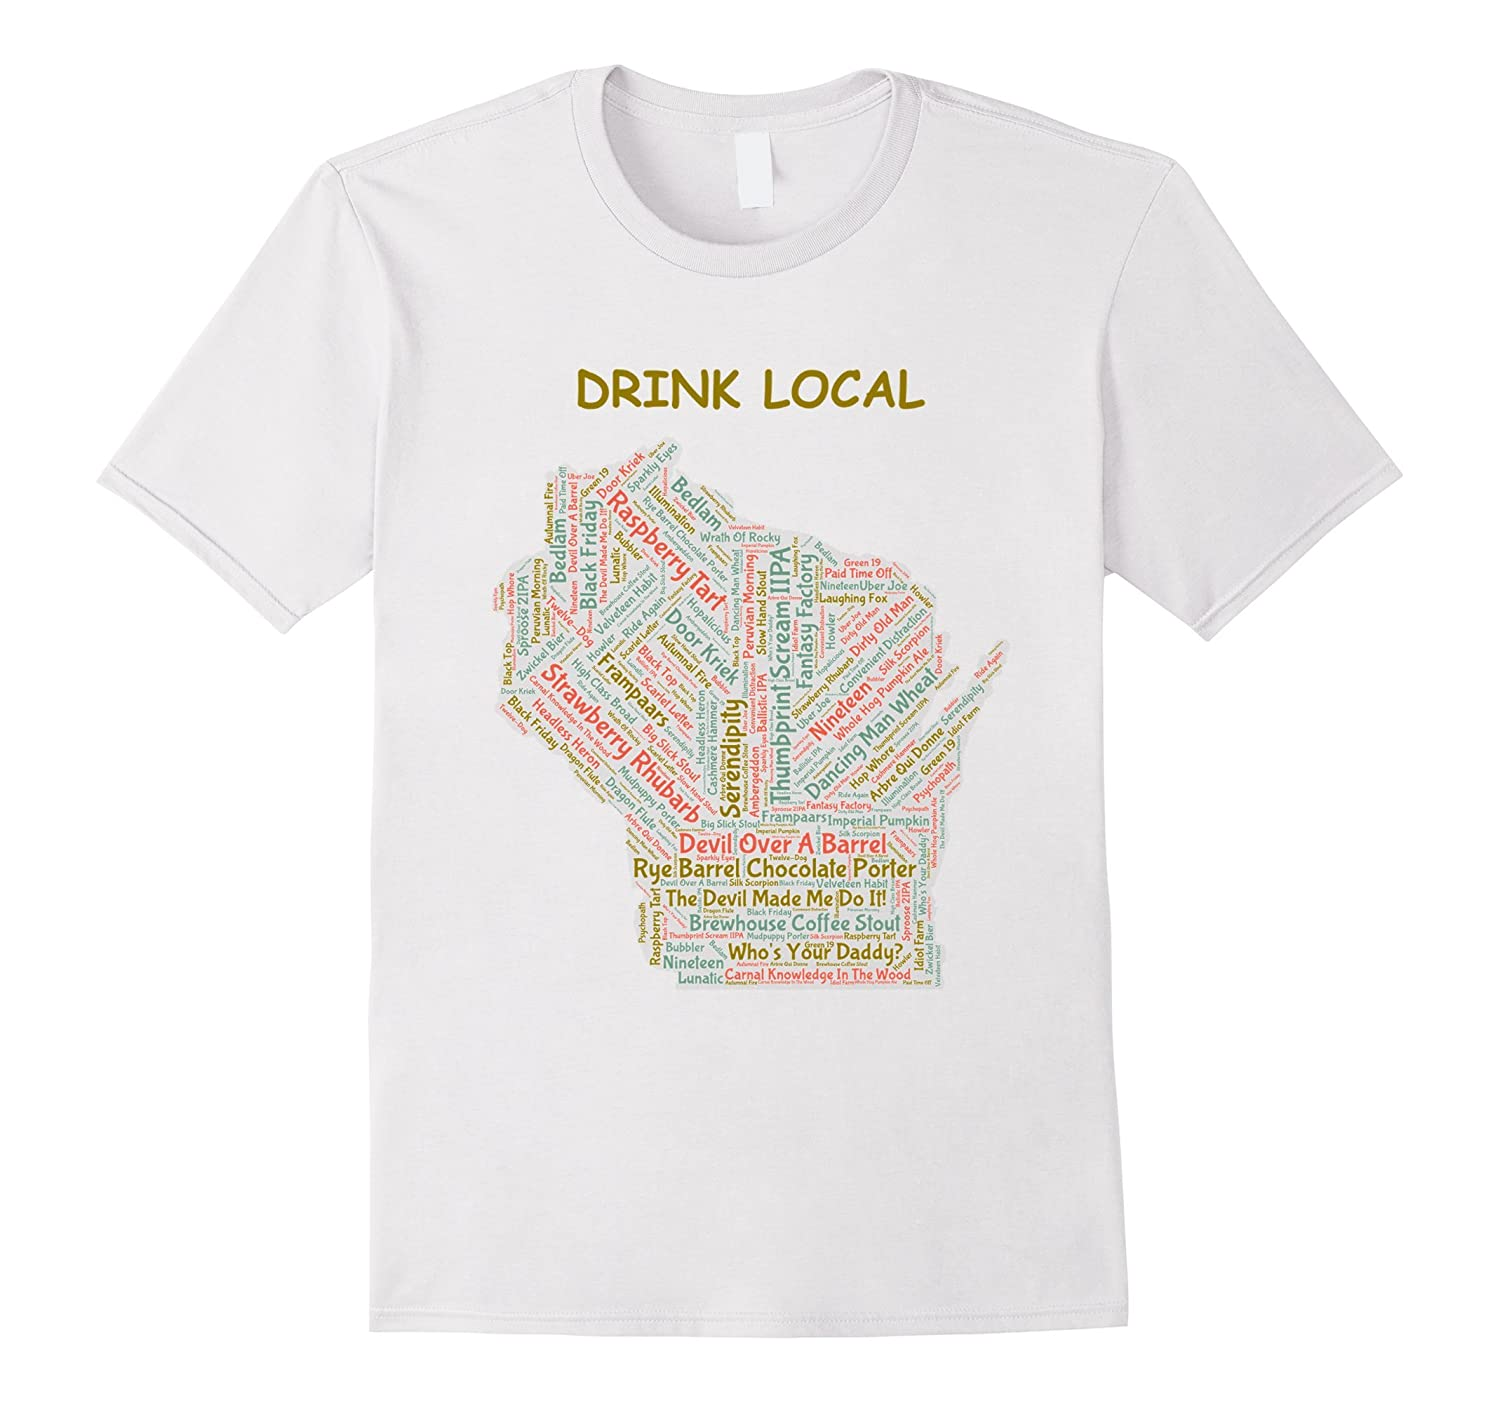 ffea305ad Wisconsin Drink Local Craft Beer T-Shirt-PL – Polozatee